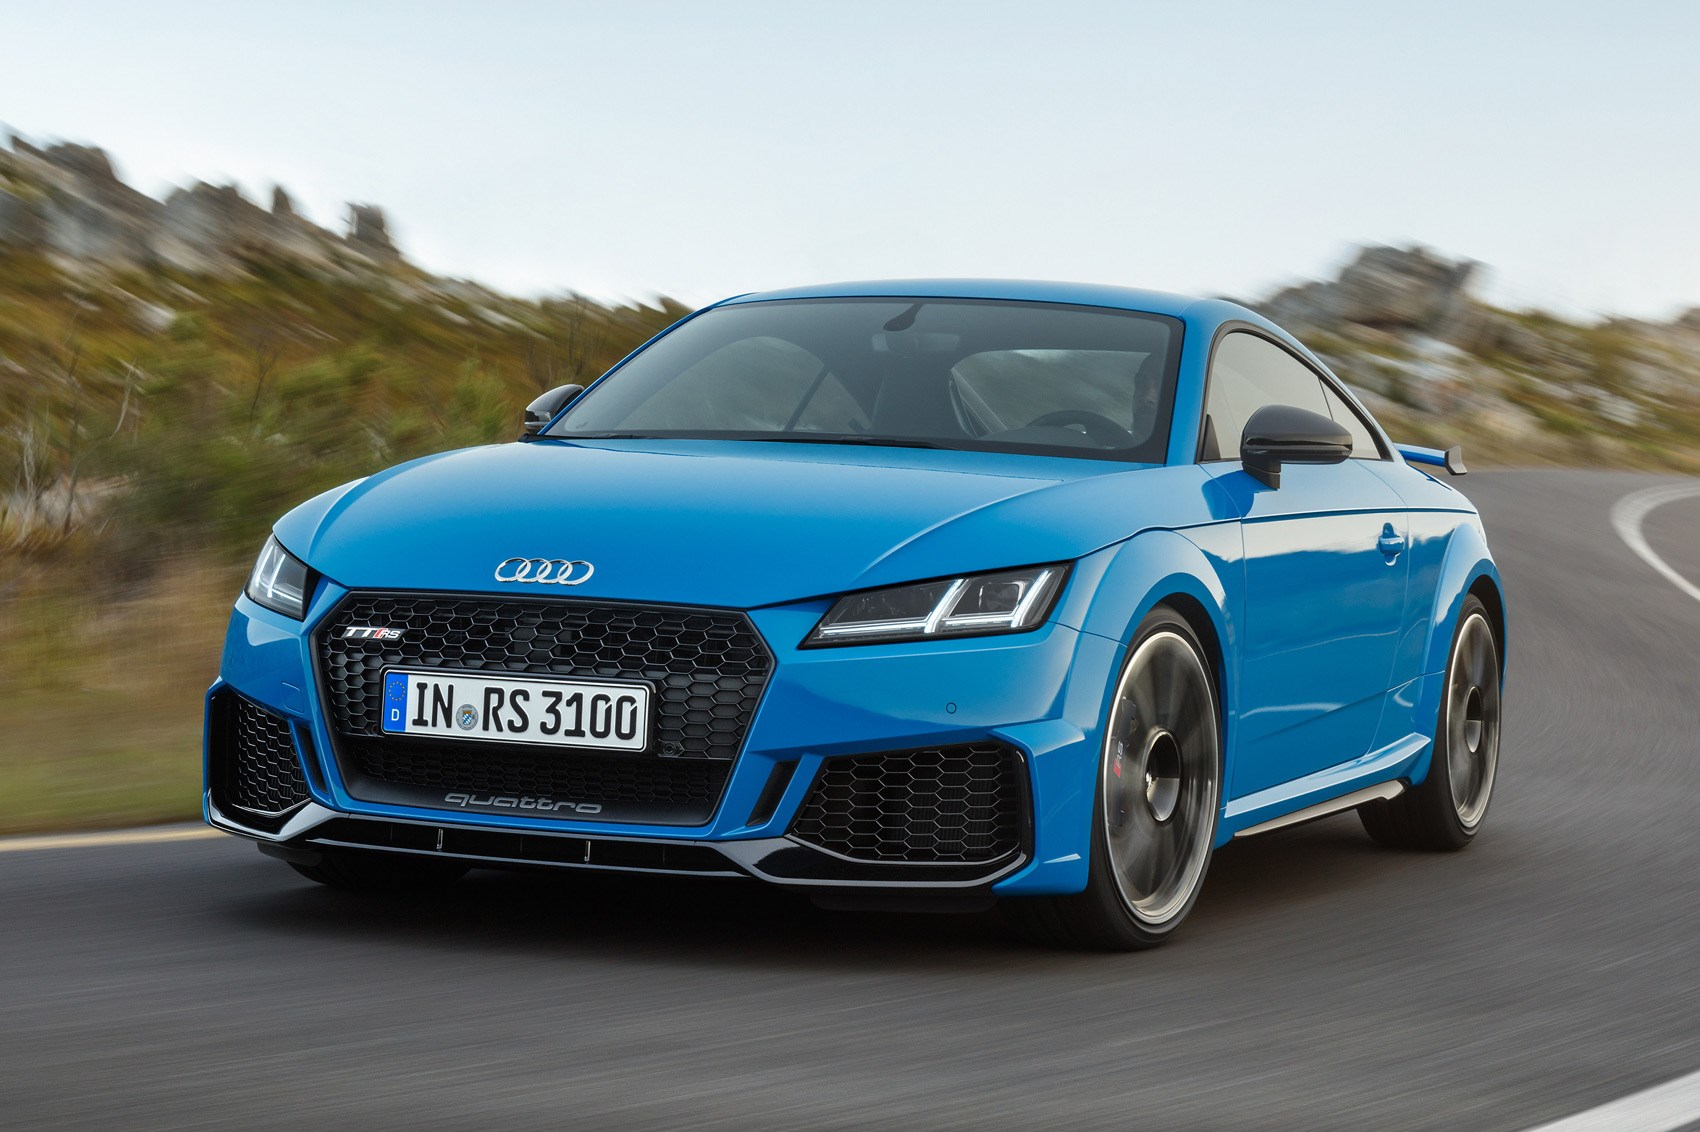 Audi TT RS (2019) Coupe And Roadster Facelifted